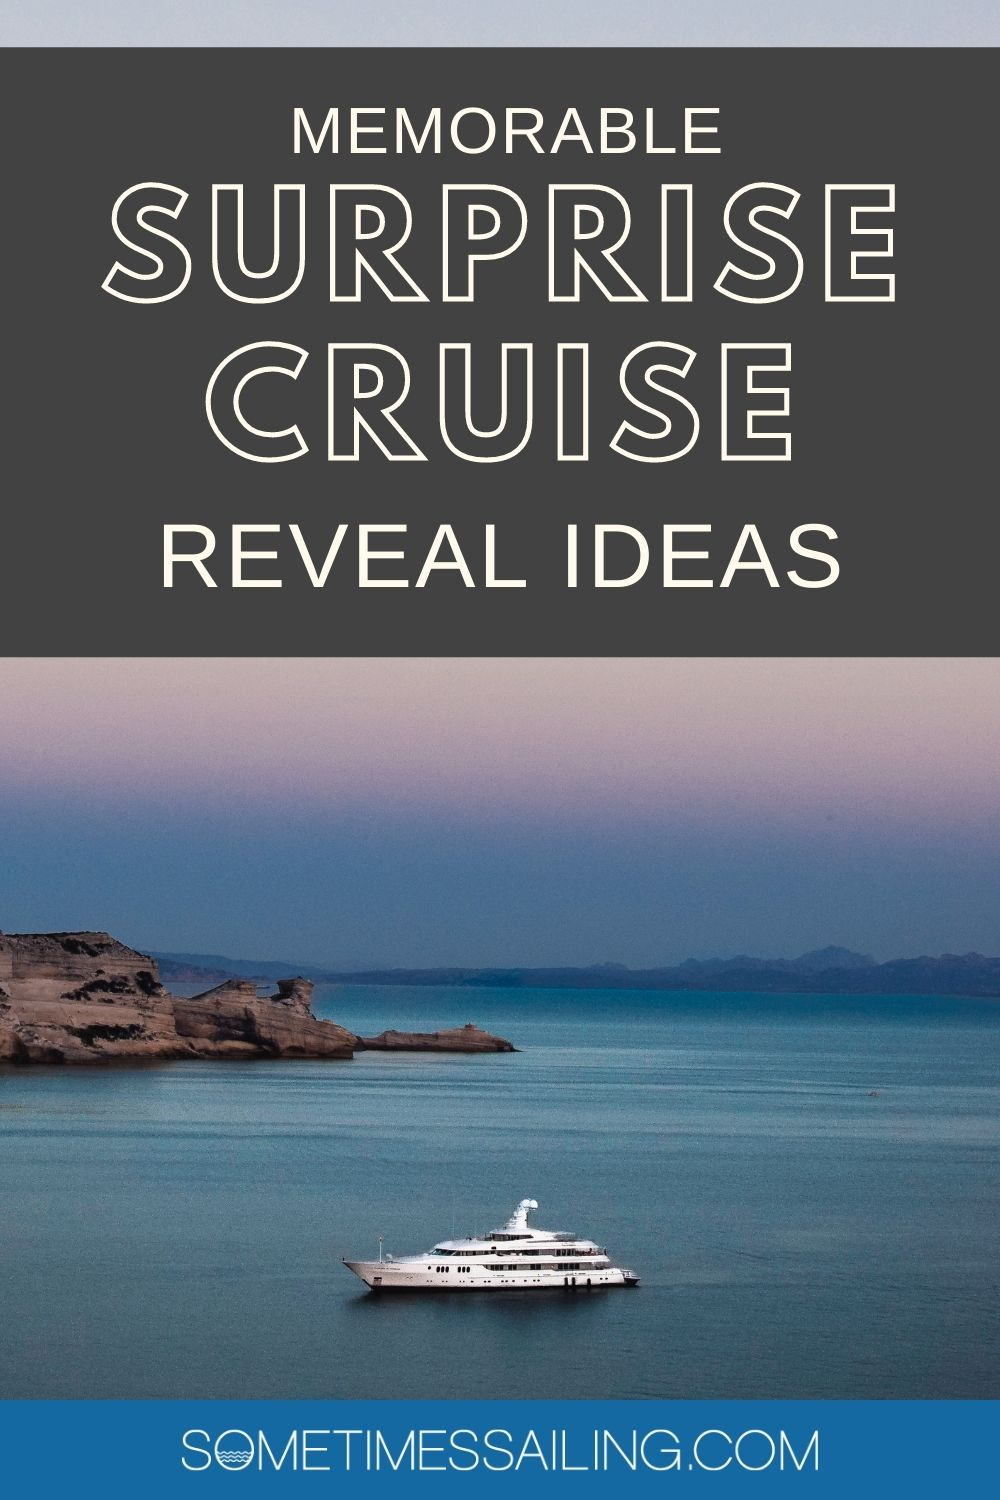 Memorable surprise cruise reveal ideas, with a photo of a small cruise ship in the water and a sunset in the sky.